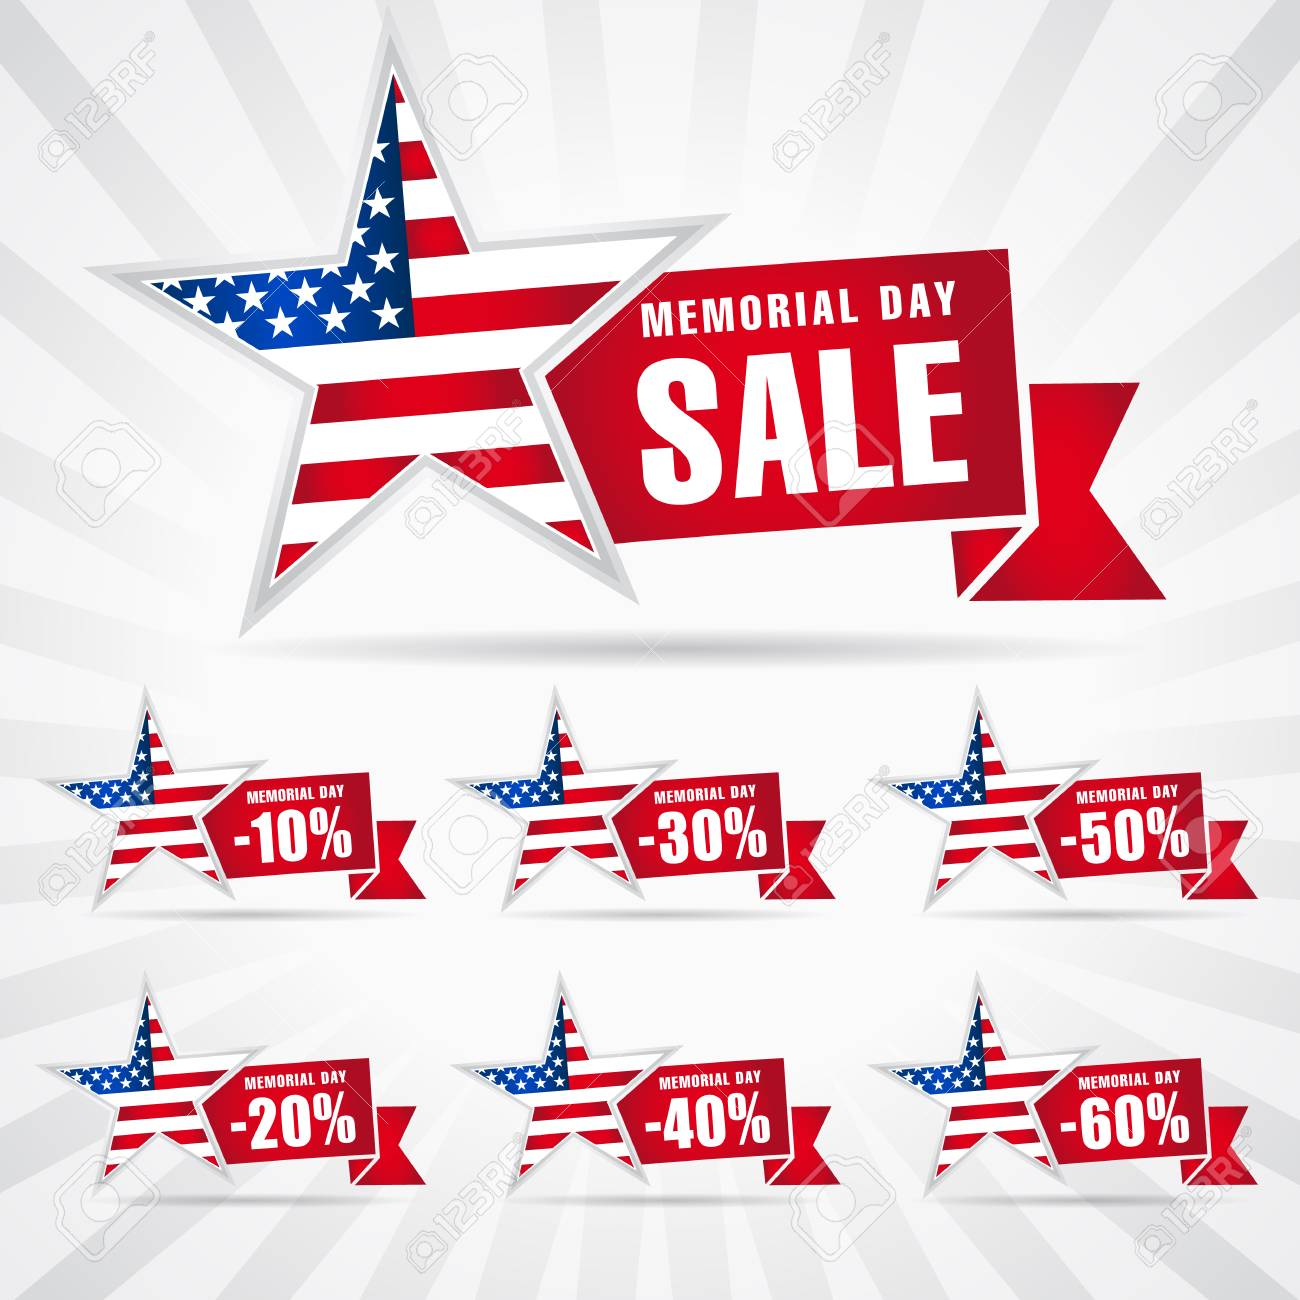 Memorial day labels Vector Image - 1515335 | StockUnlimited